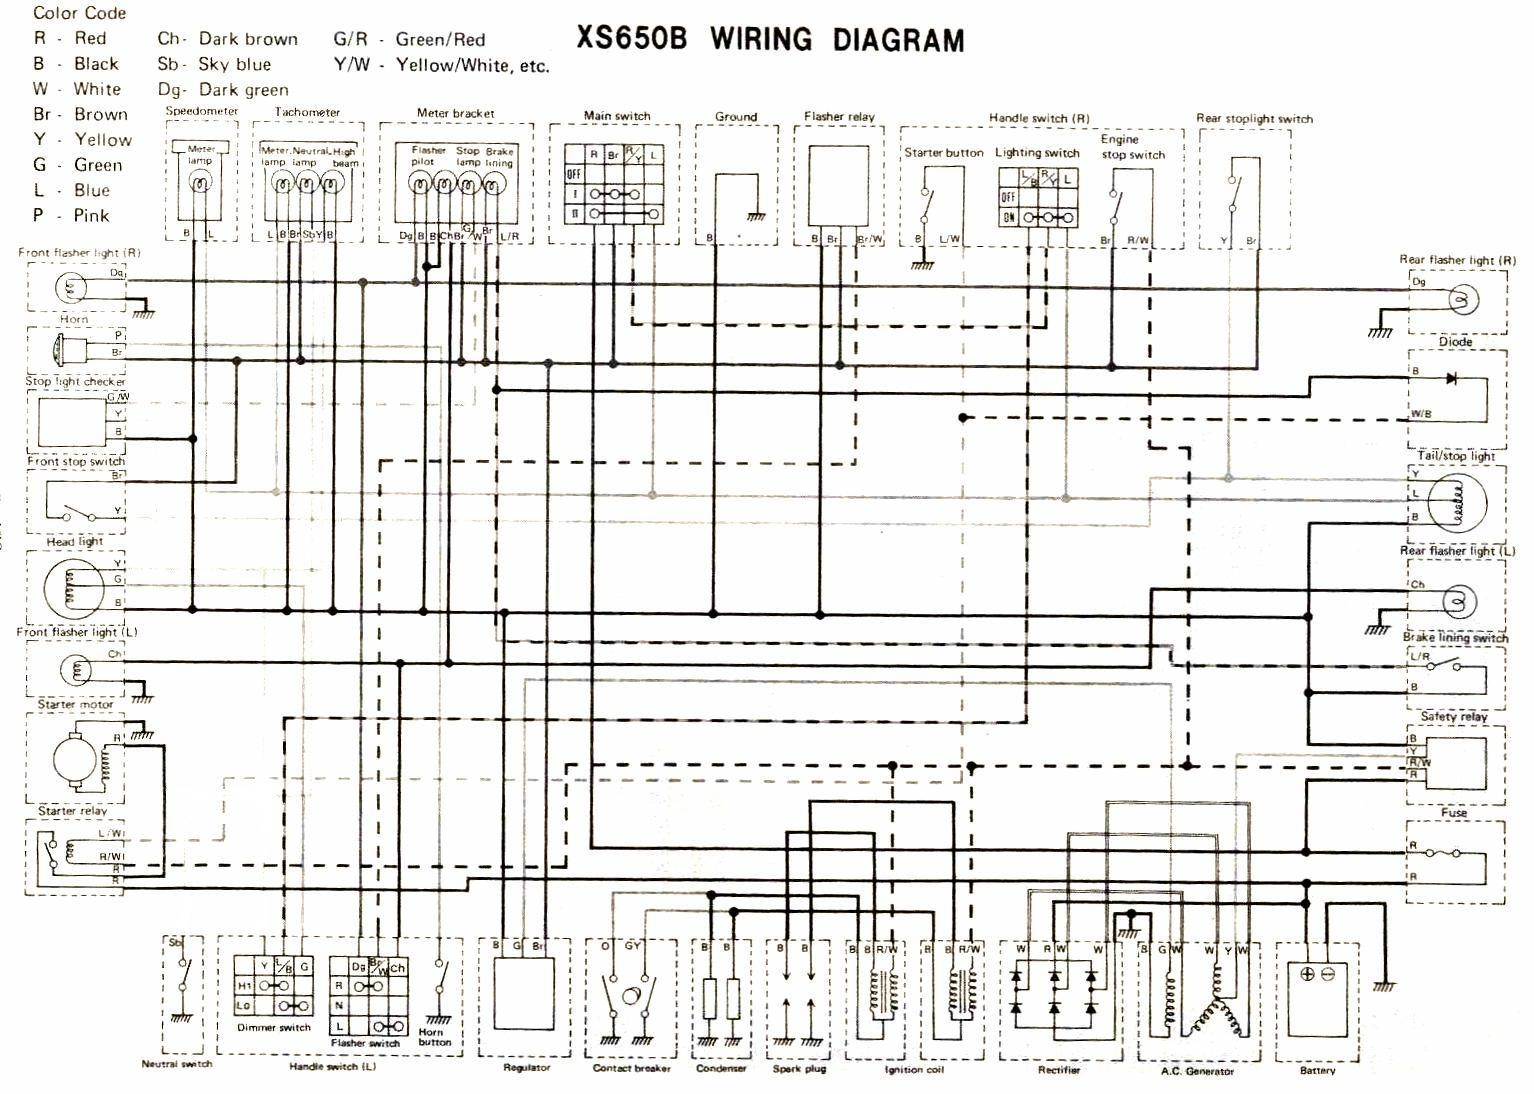 8c38 99 yamaha road star wiring diagram | wiring resources  wiring resources